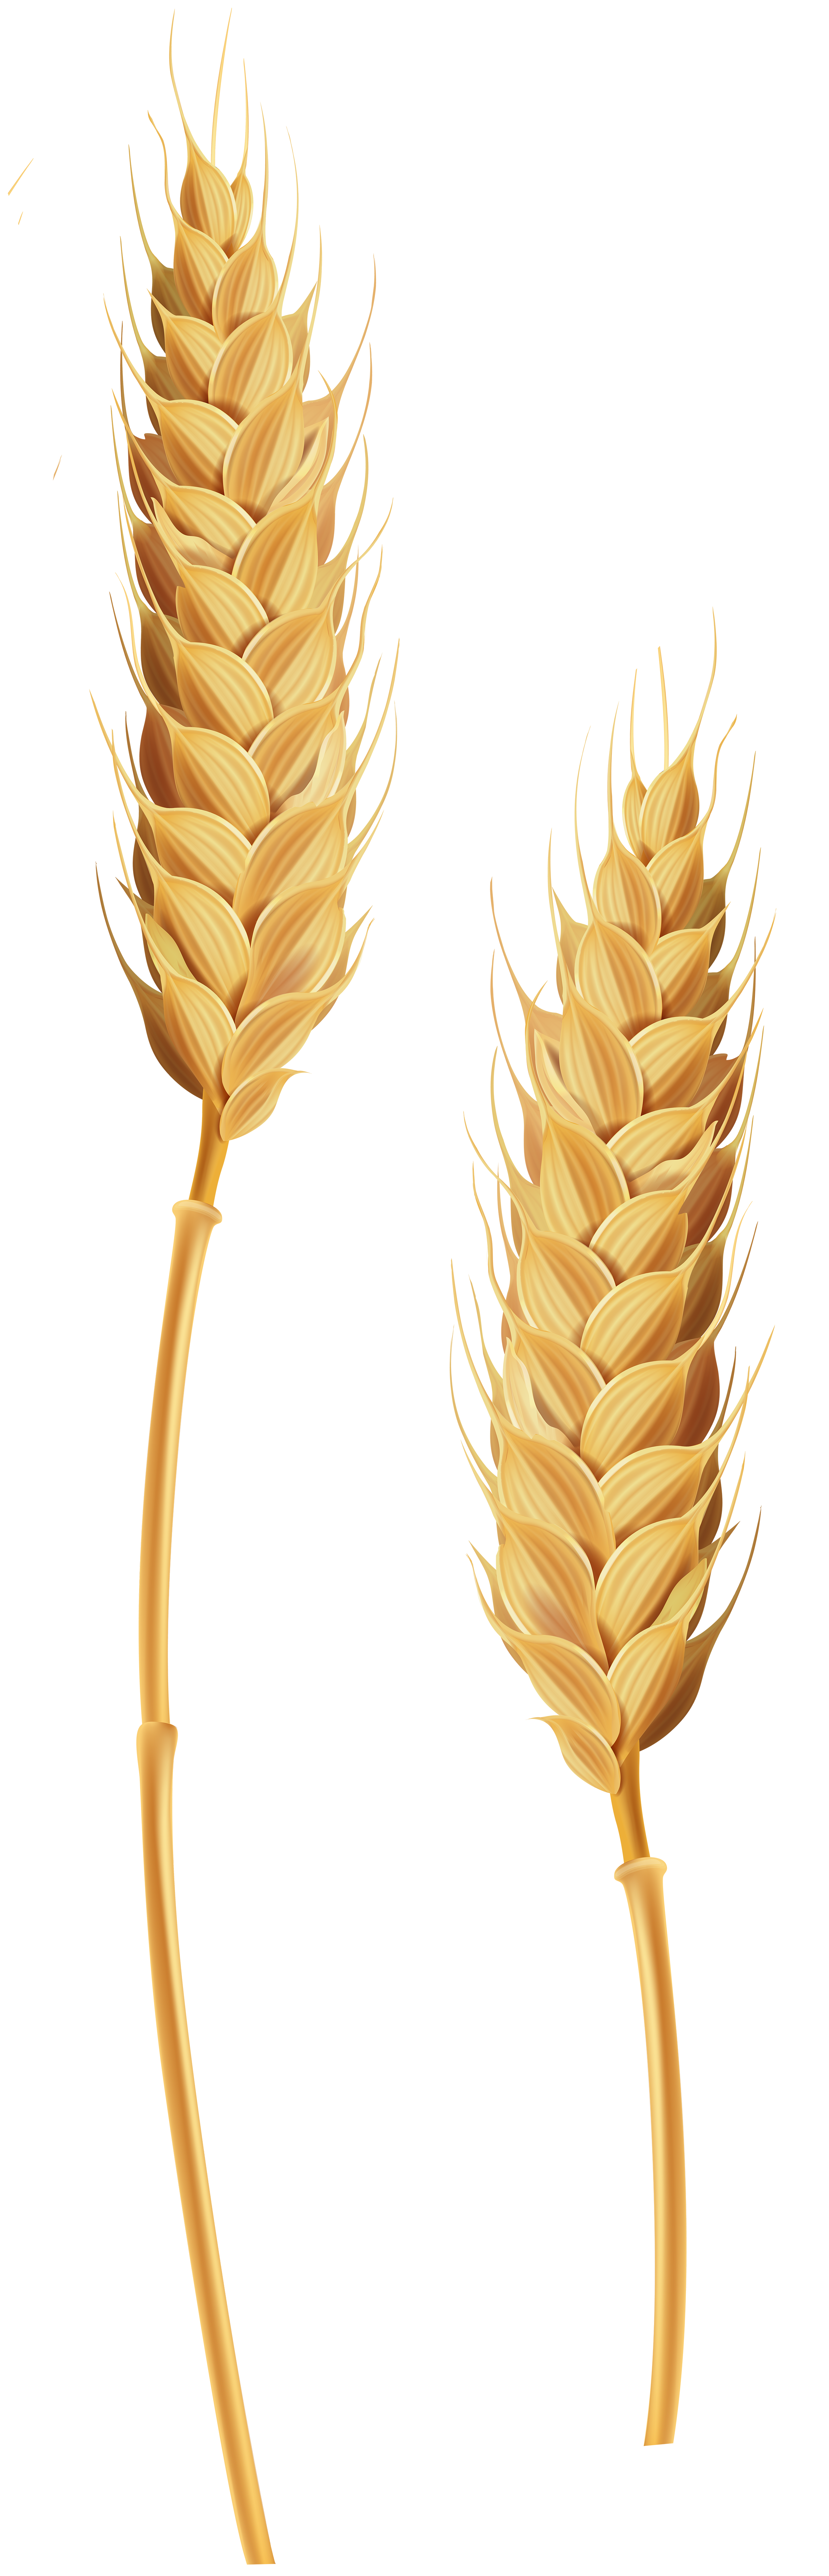 Shock of wheat clipart with transparent background png royalty free Wheat clipart transparent background, Wheat transparent ... png royalty free